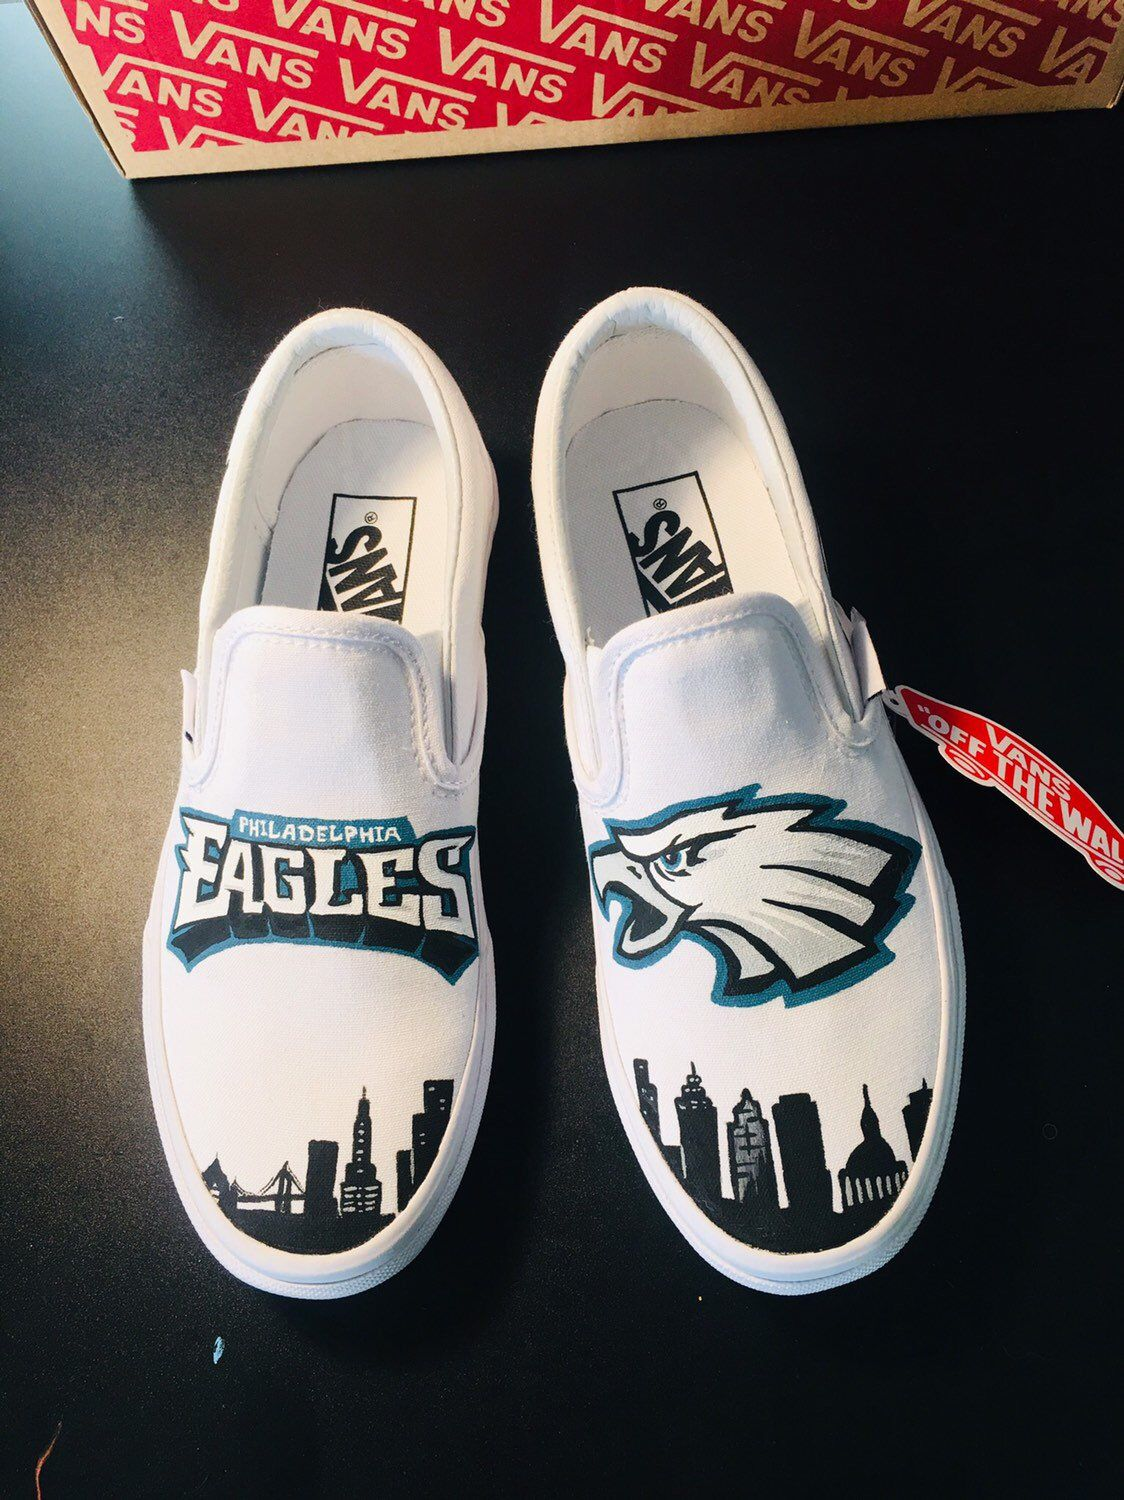 Eagles Nfl Vans With Images Philadelphia Eagles Shoes Custom